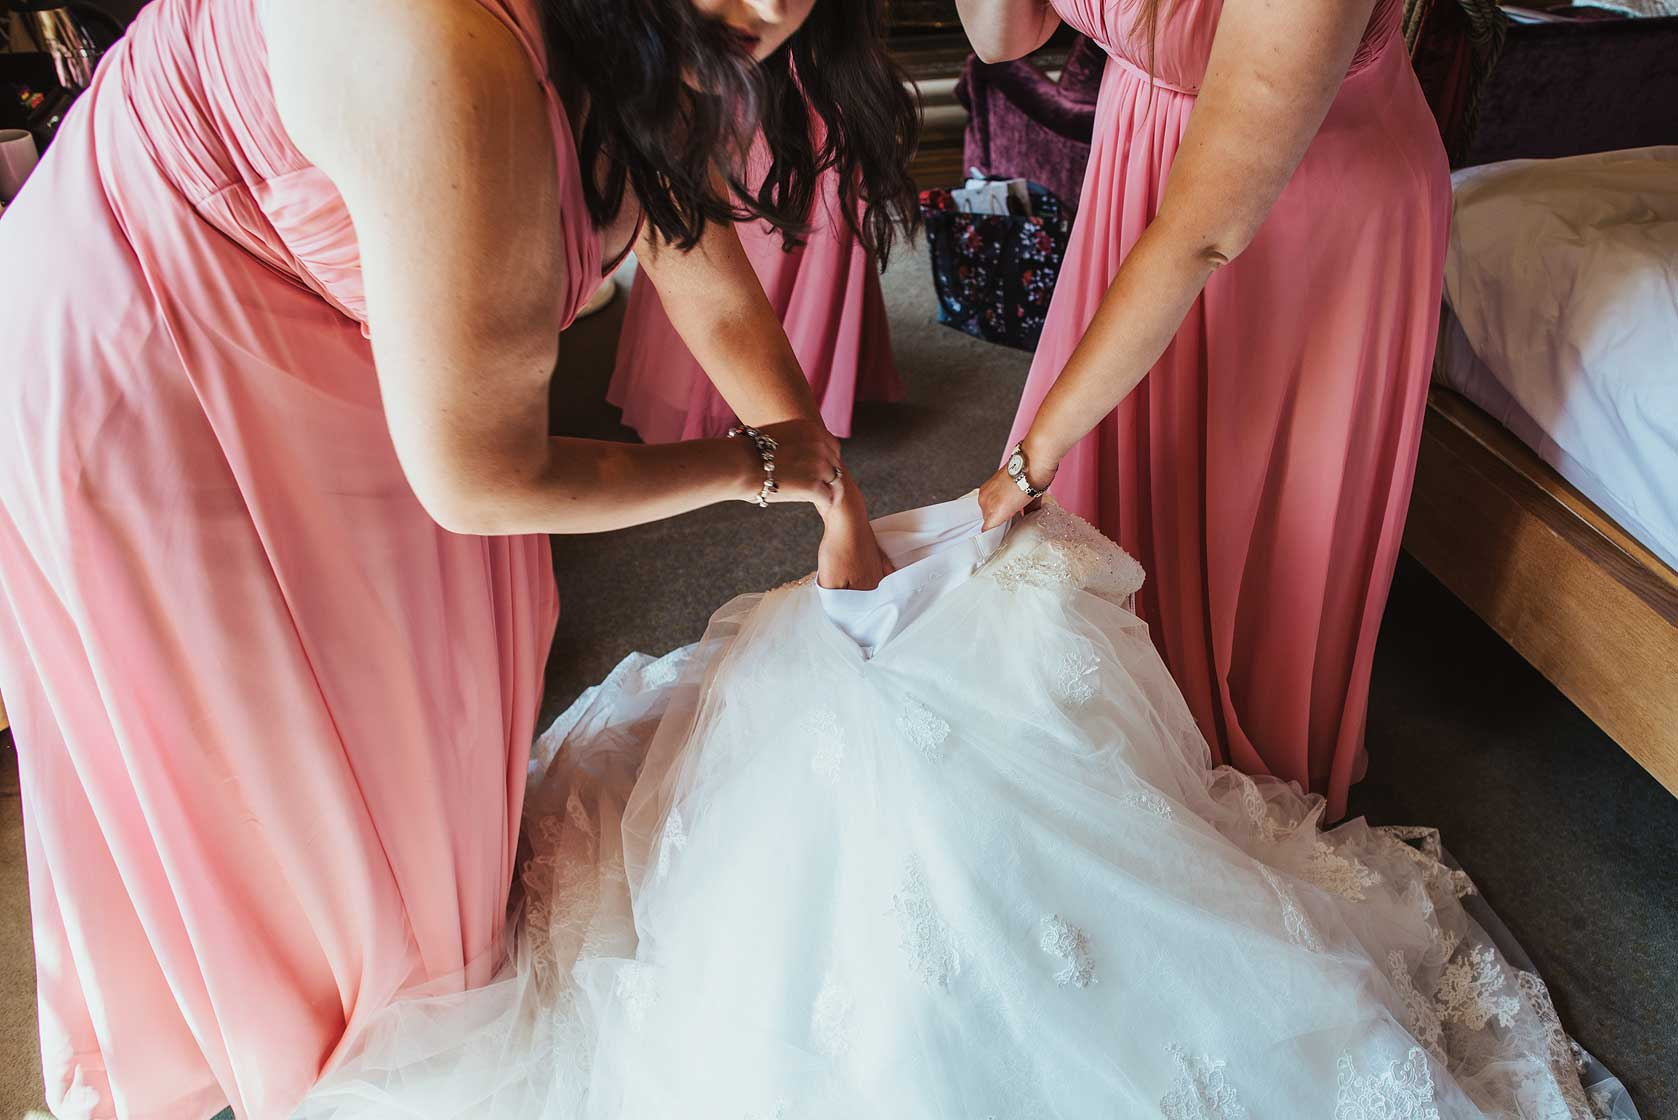 Bridesmaids prepare the wedding dress